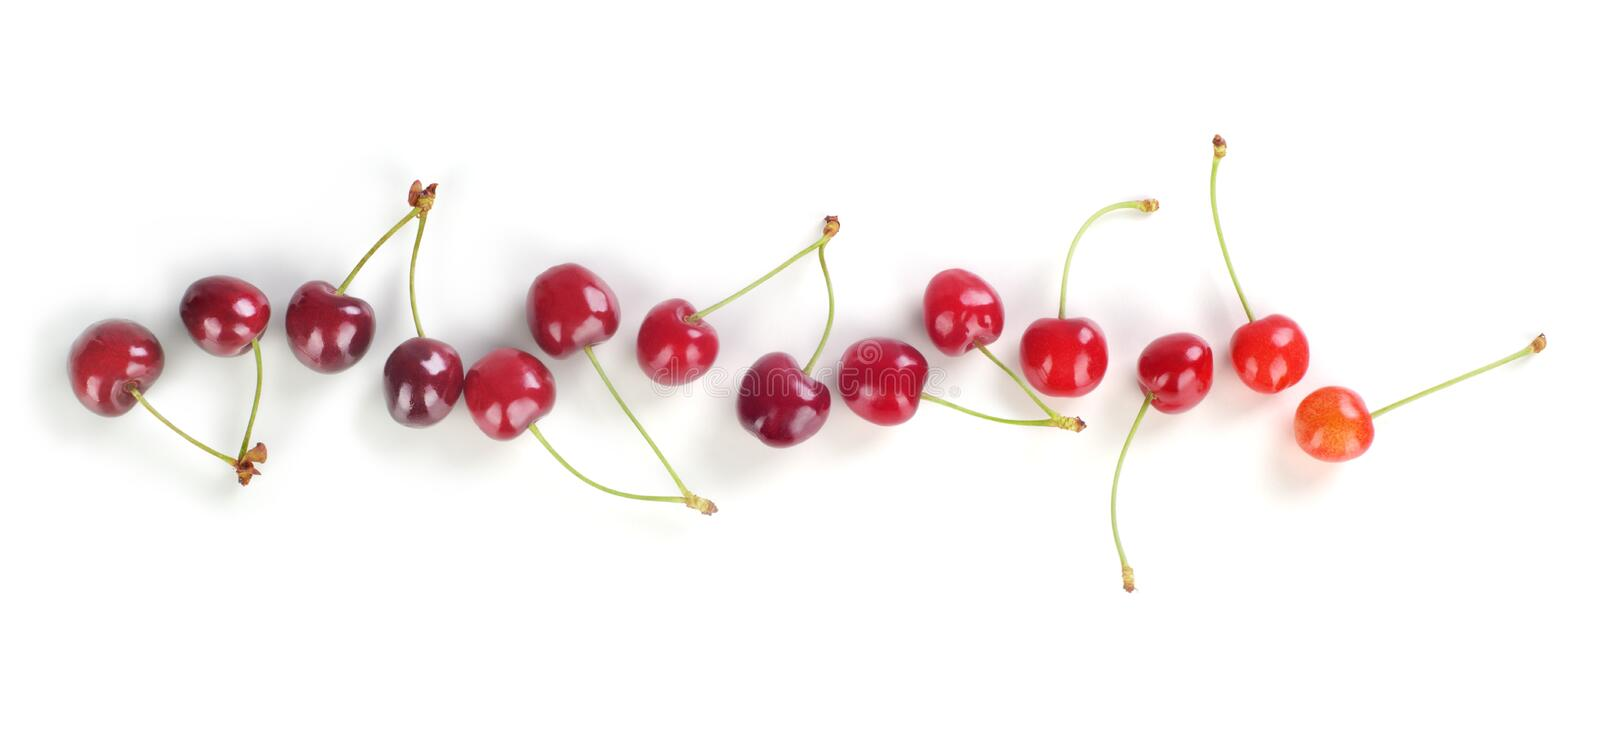 Row of cherries royalty free stock photo